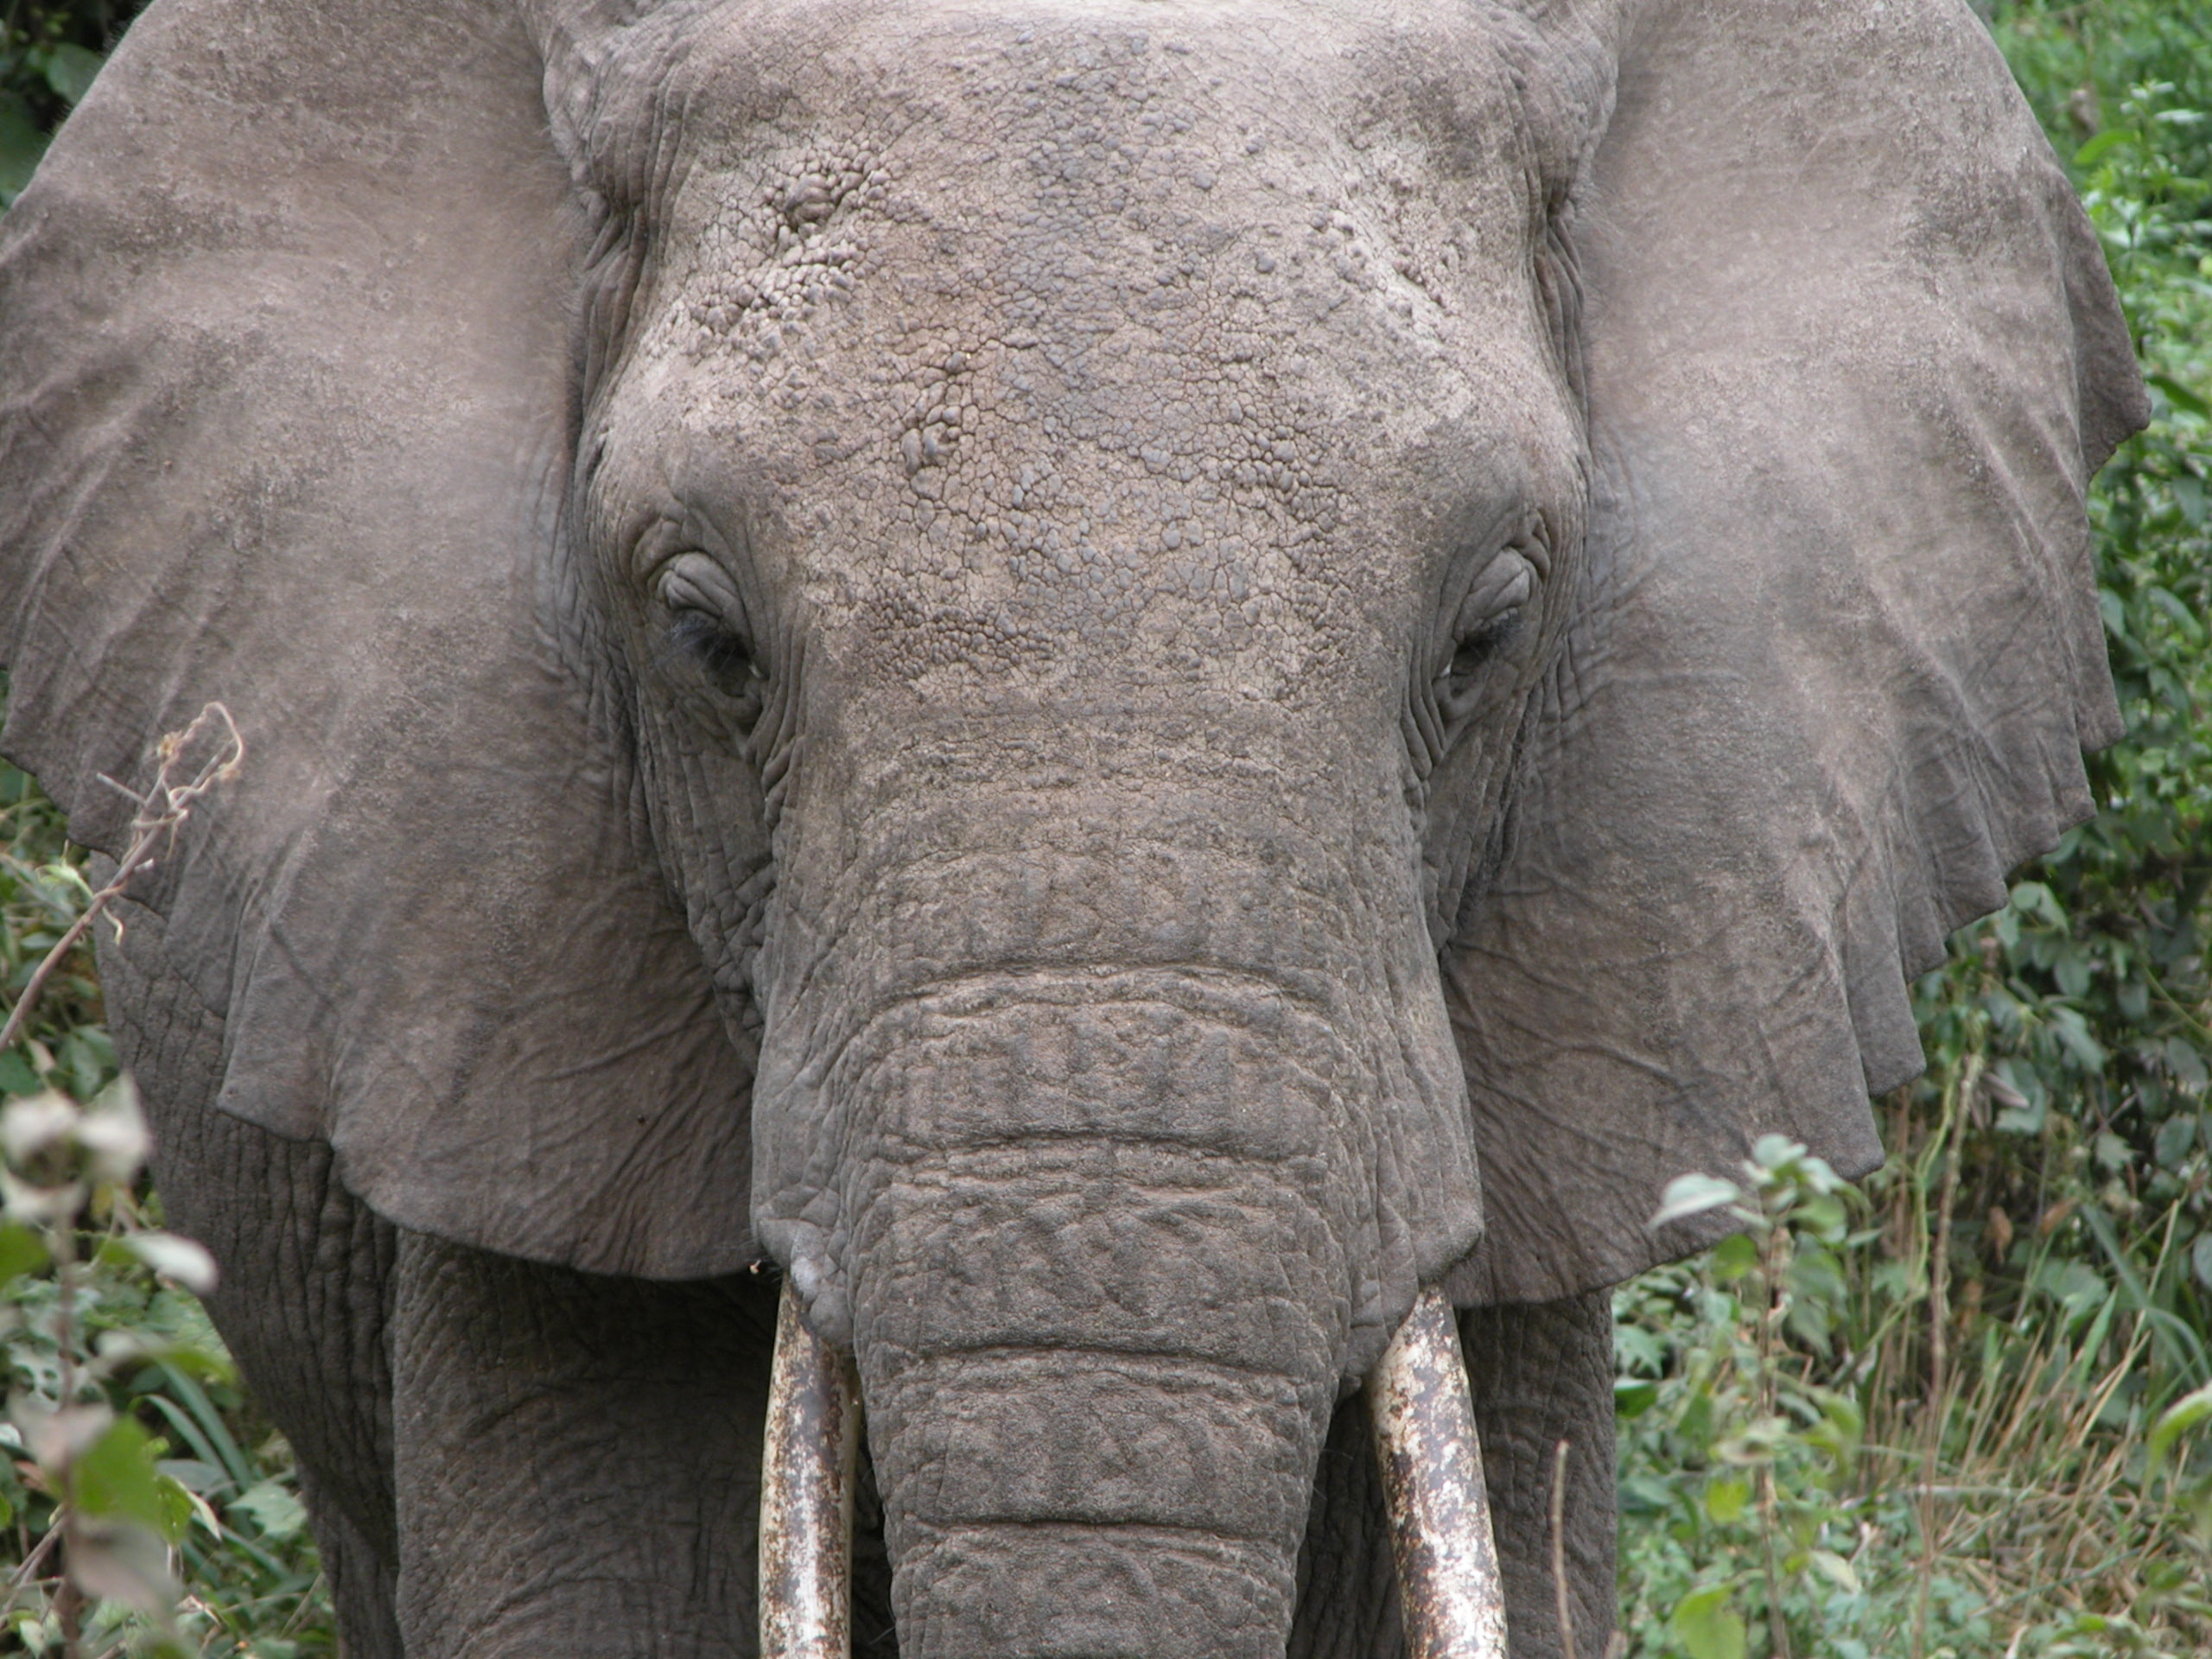 gray elephant near green leaf plant